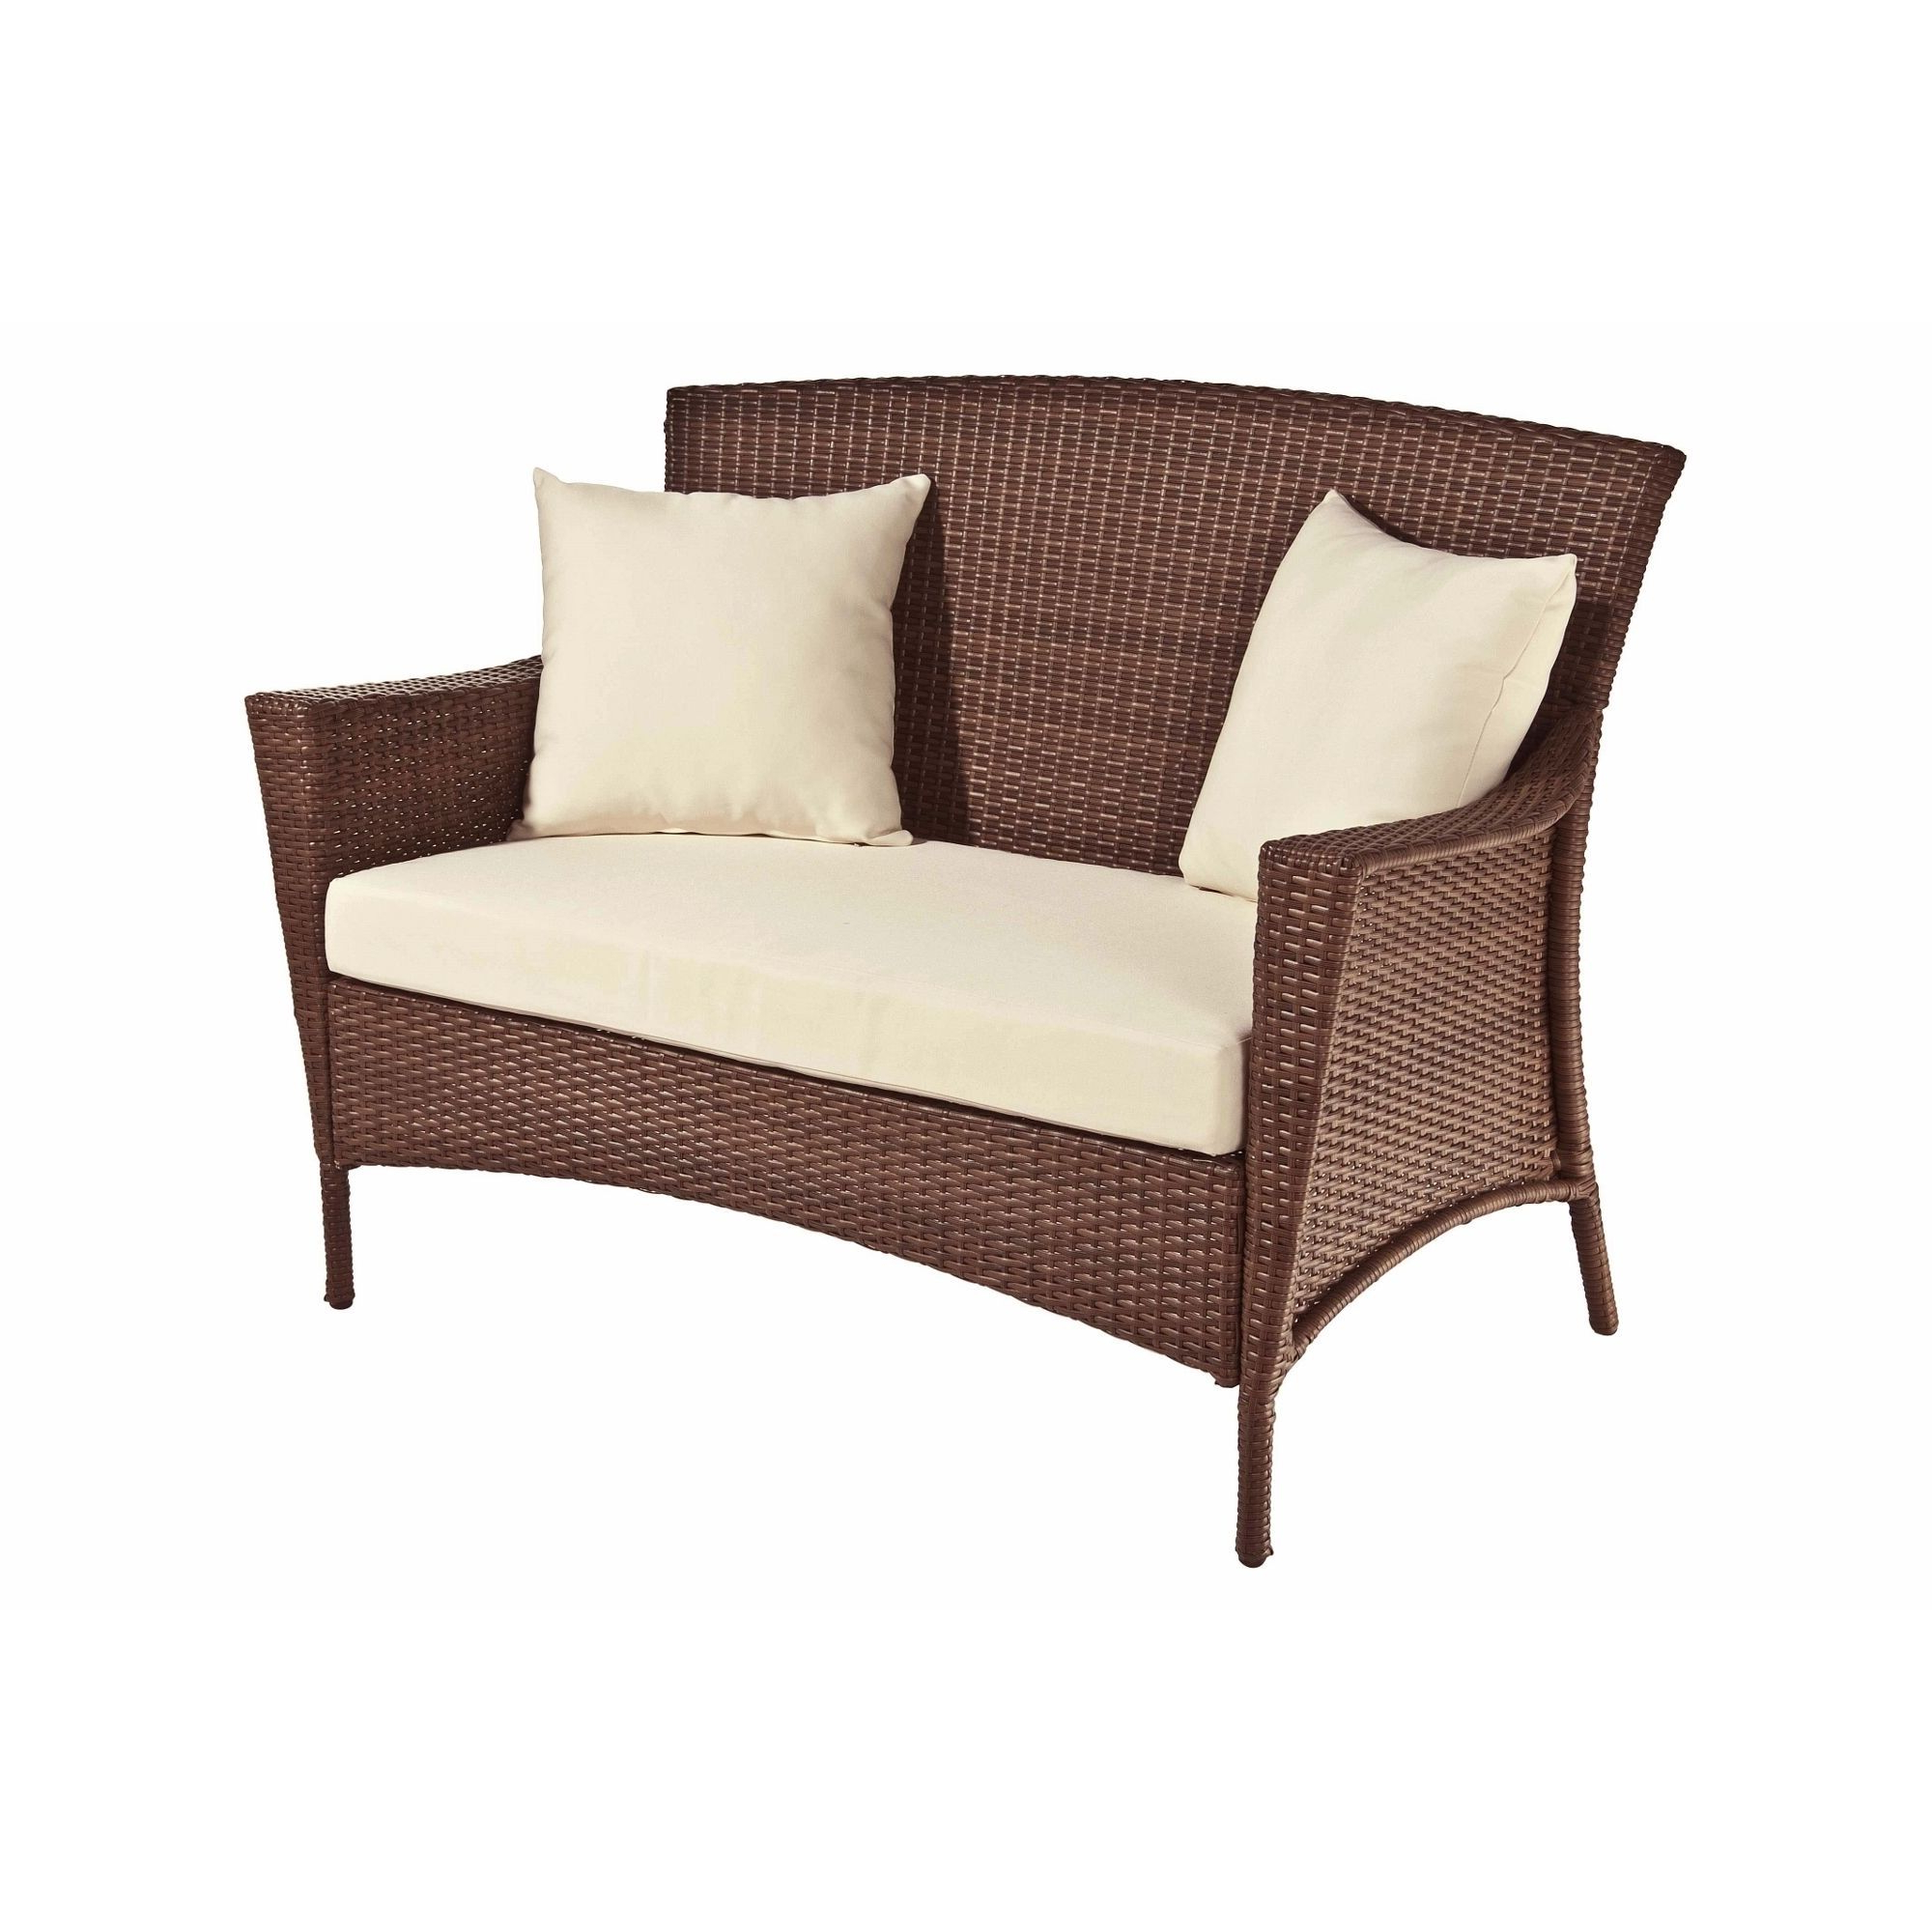 Mullenax Outdoor Loveseats With Cushions Throughout Most Popular Panama Jack Key Biscayne Woven Loveseat With Cushion (View 10 of 20)